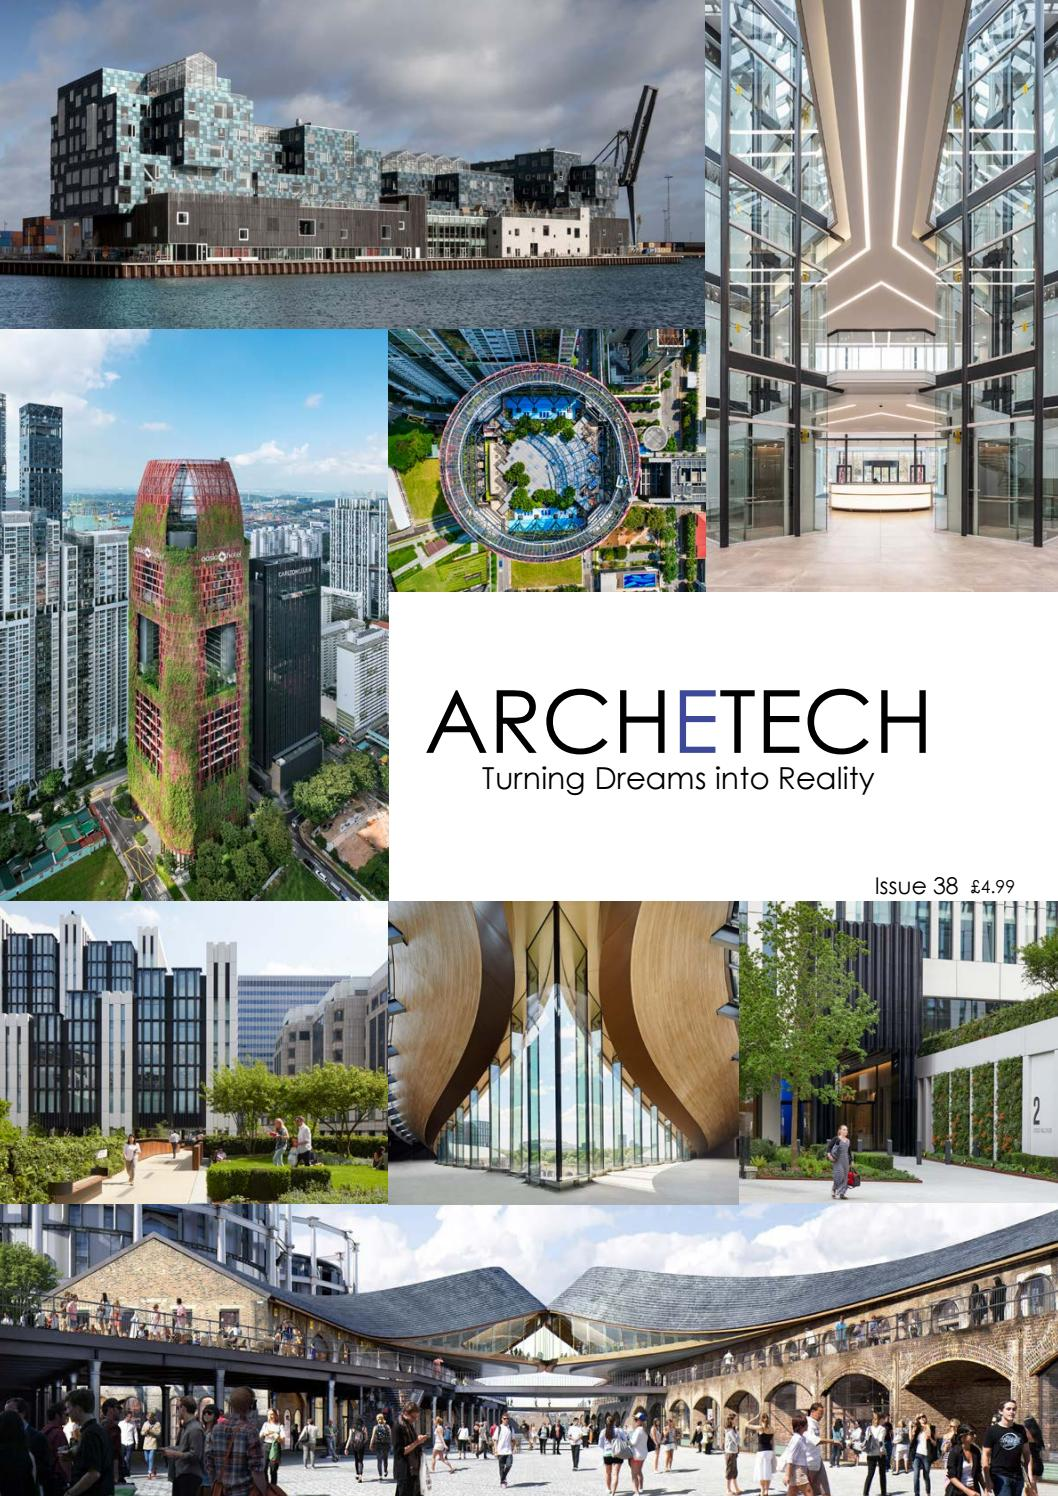 hight resolution of archetech issue 38 2018